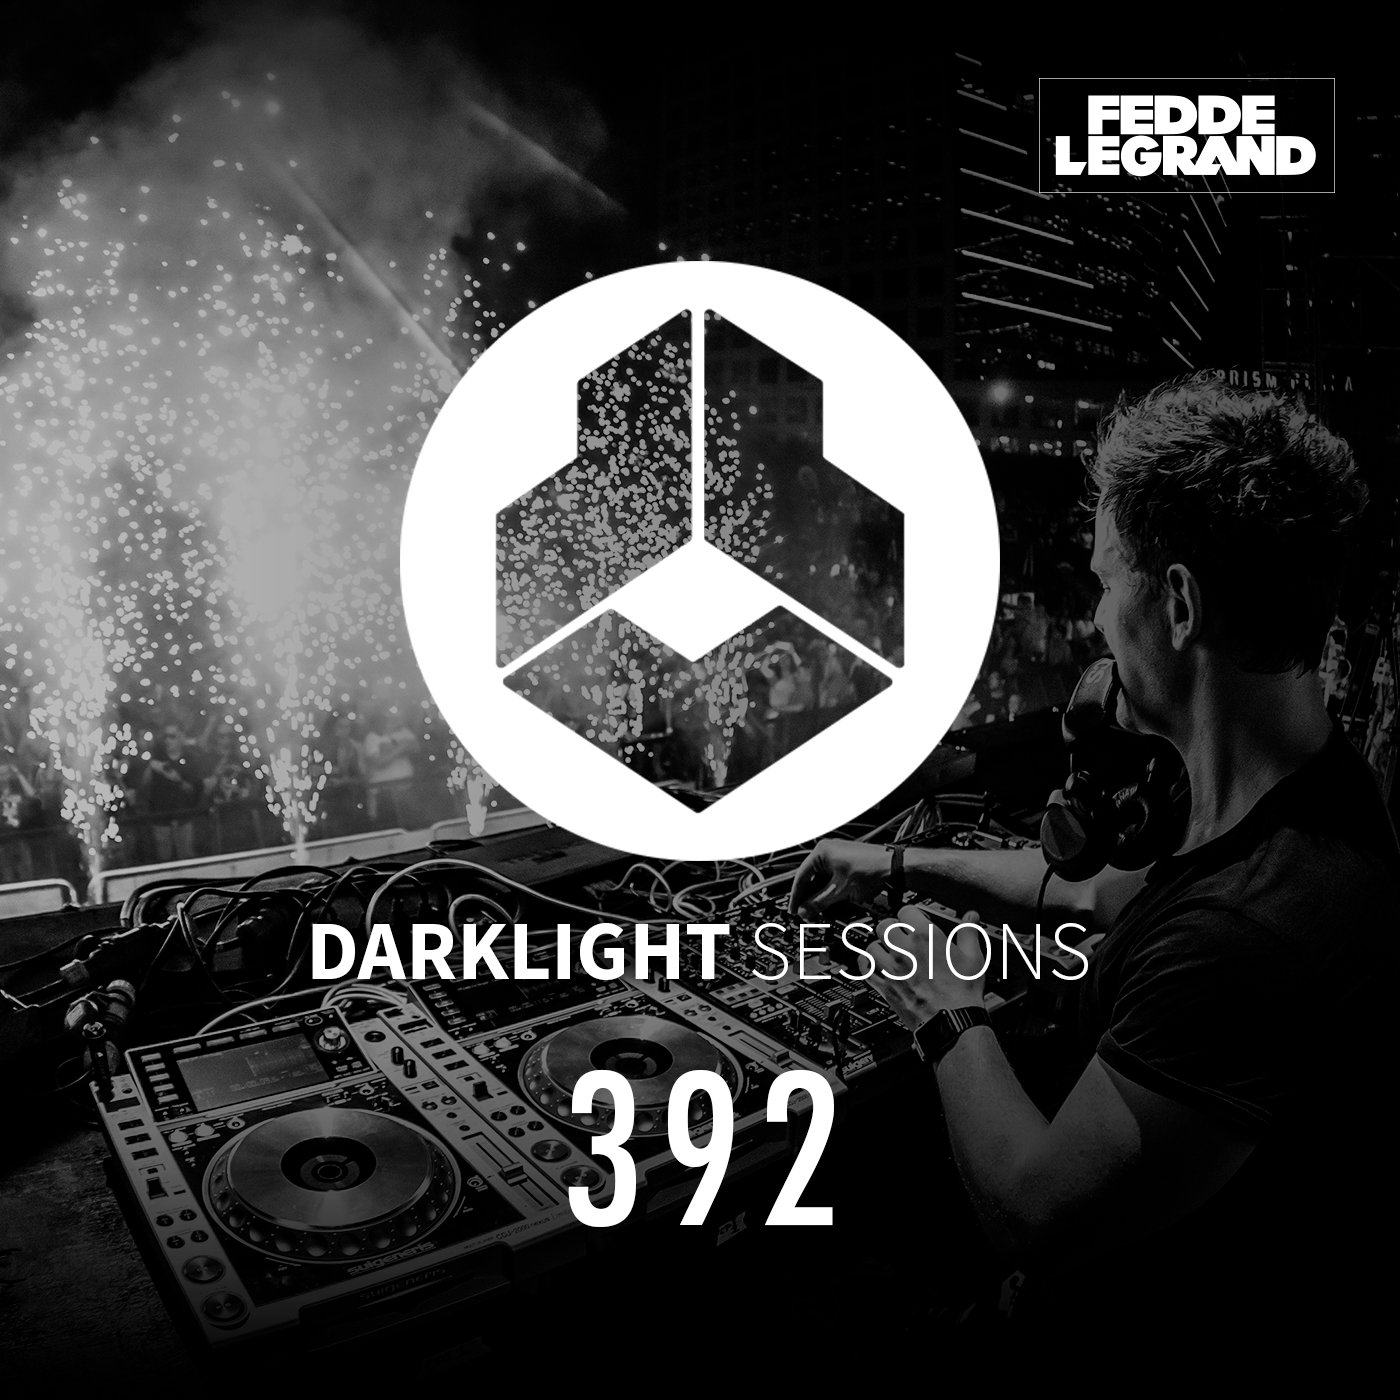 Darklight Sessions 392